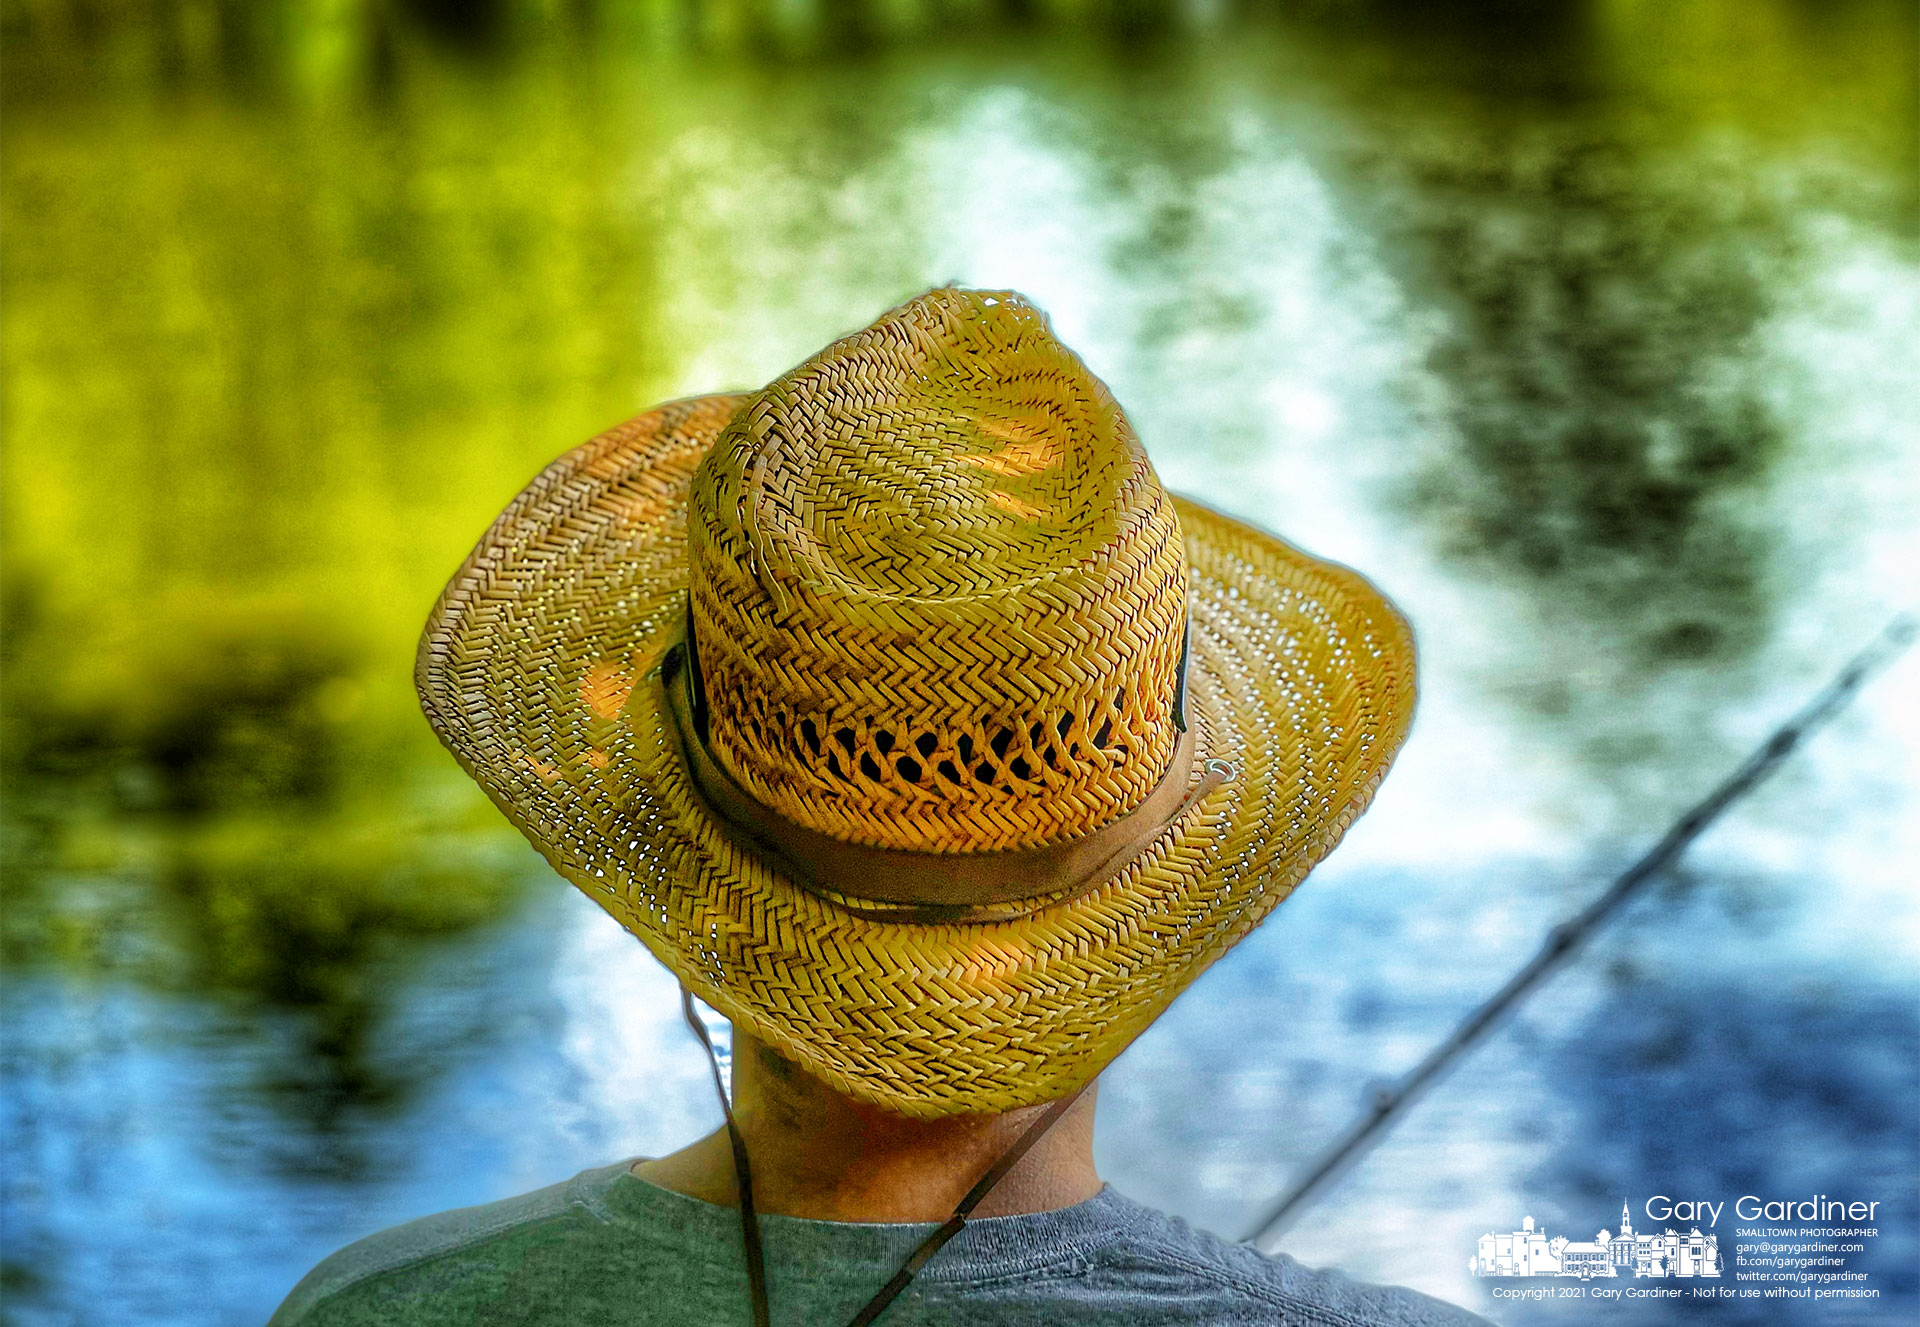 A fisherman wears a straw hat as protection from the sunas he fishes along the shoreline of Hoover Reservoir. My Final Photo for July 3, 2021.